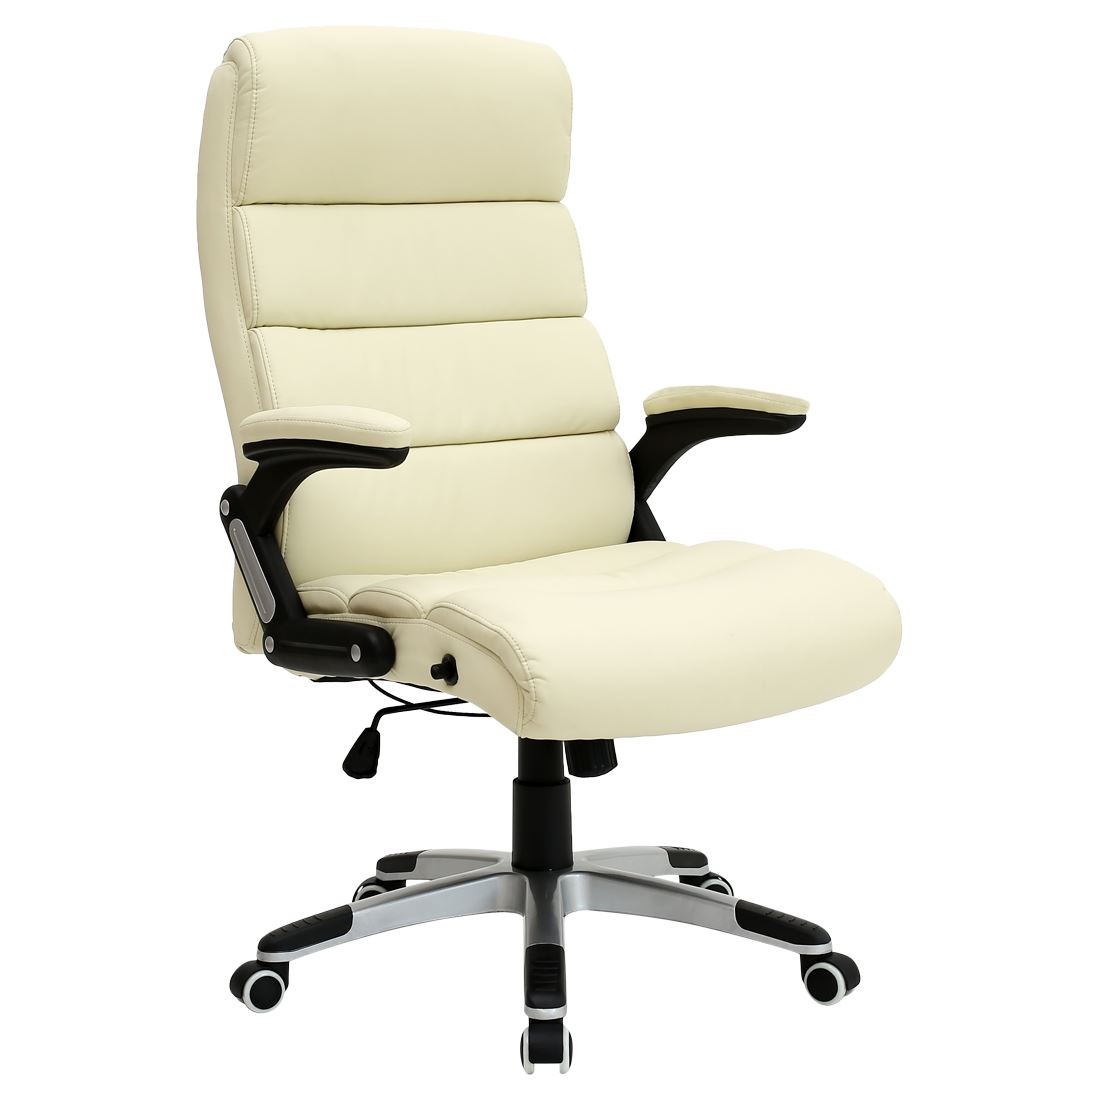 high chairs uk red side chair havana cream luxury reclining executive leather office